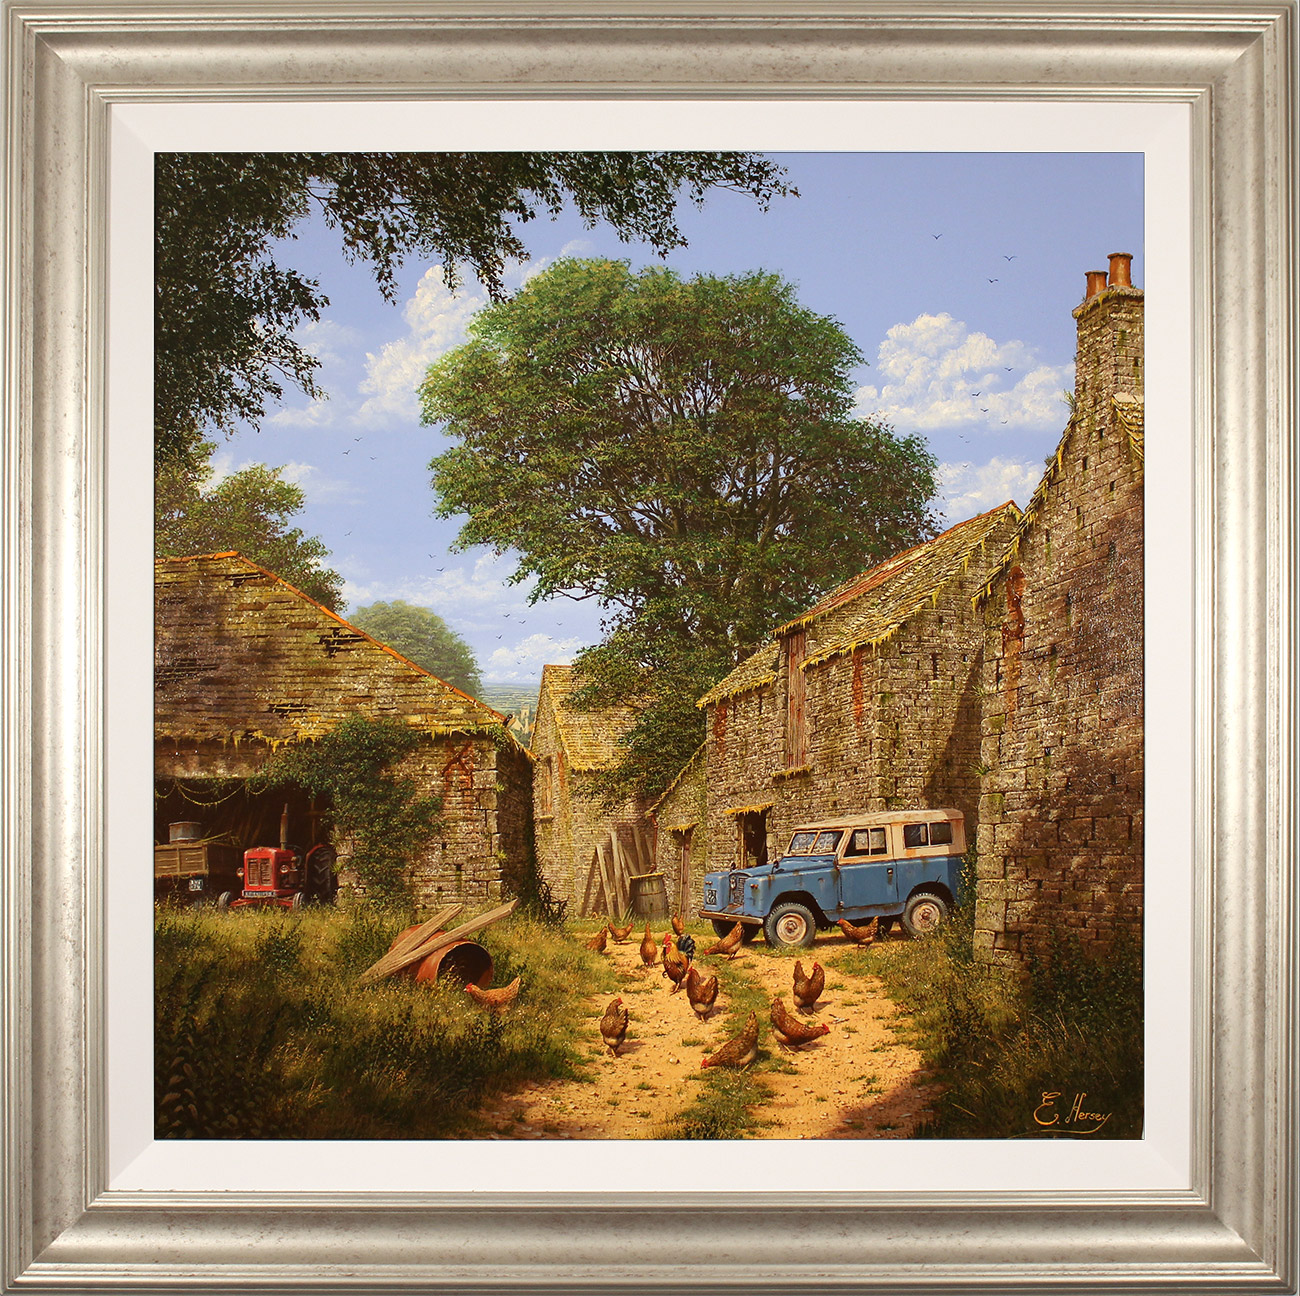 Edward Hersey, Original oil painting on panel, Roving Days Are Done, click to enlarge